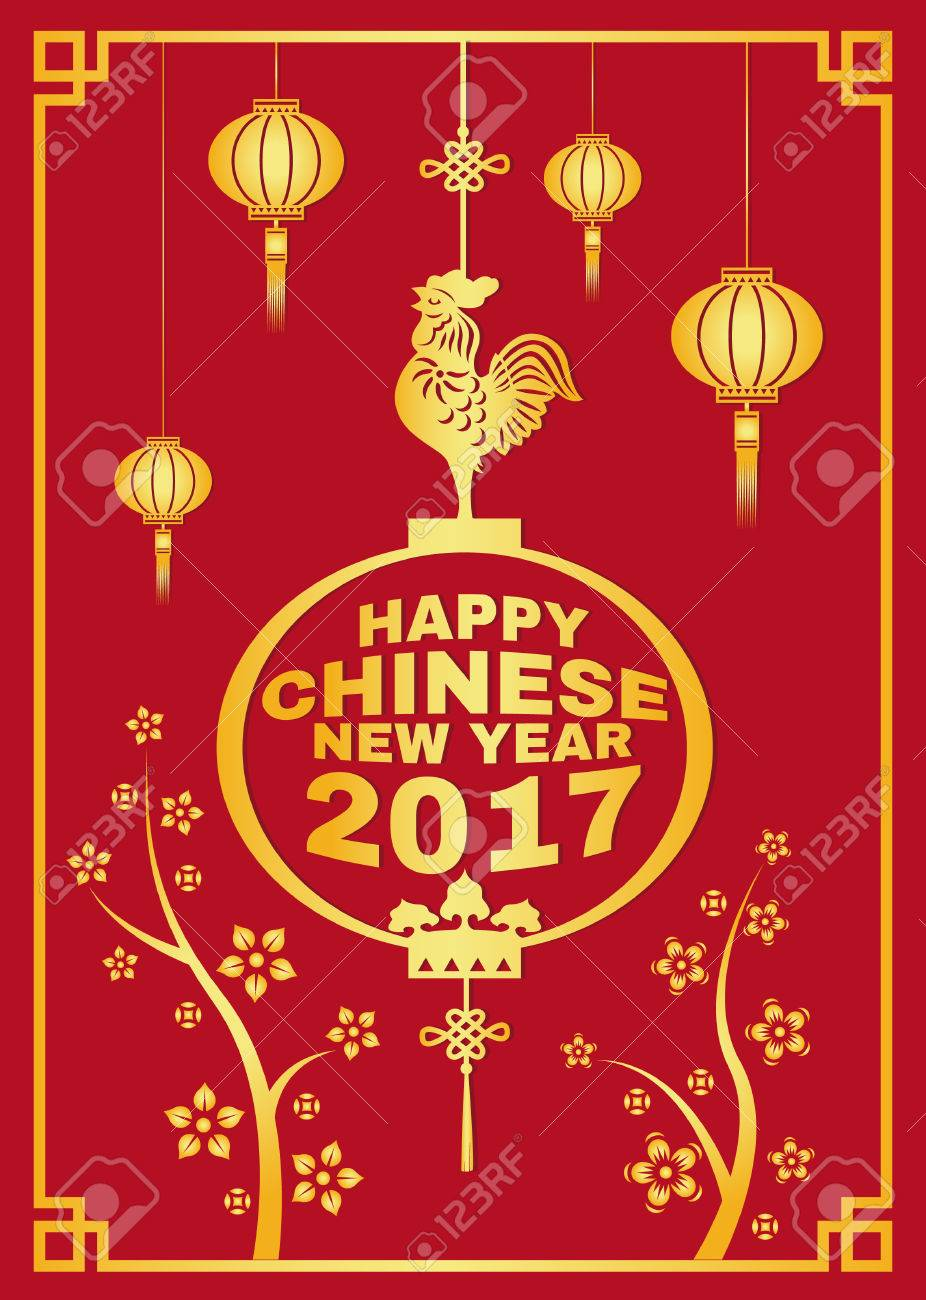 Happy Chinese New Year 2017 Card Is Lanterns And Chicken Symbols